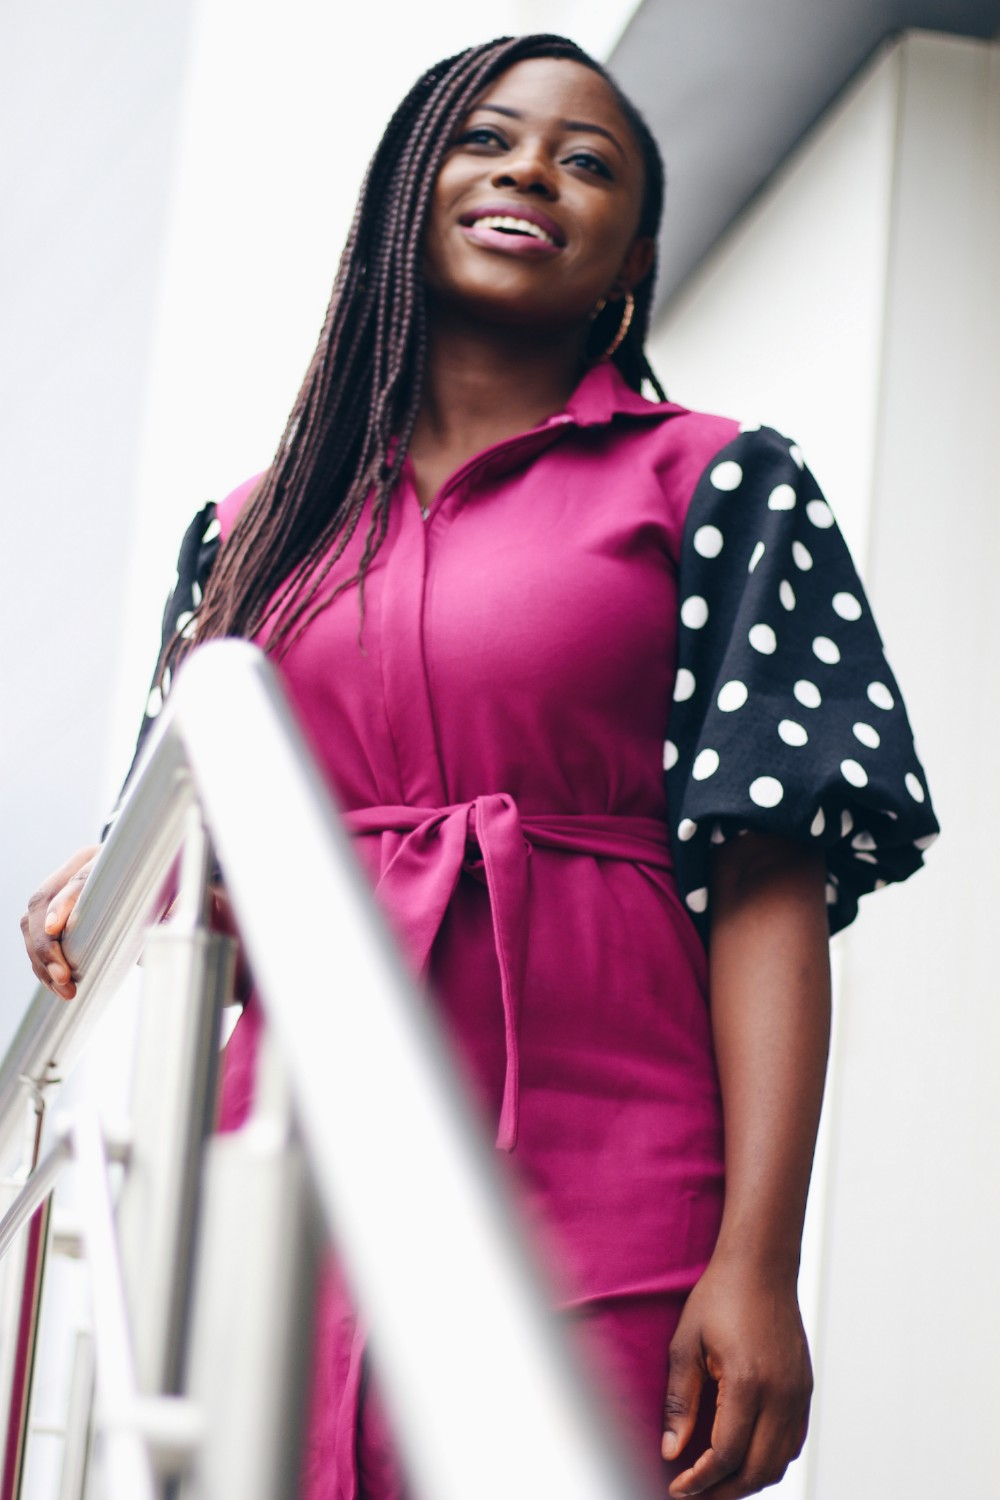 the polkadot dress with puff sleeves